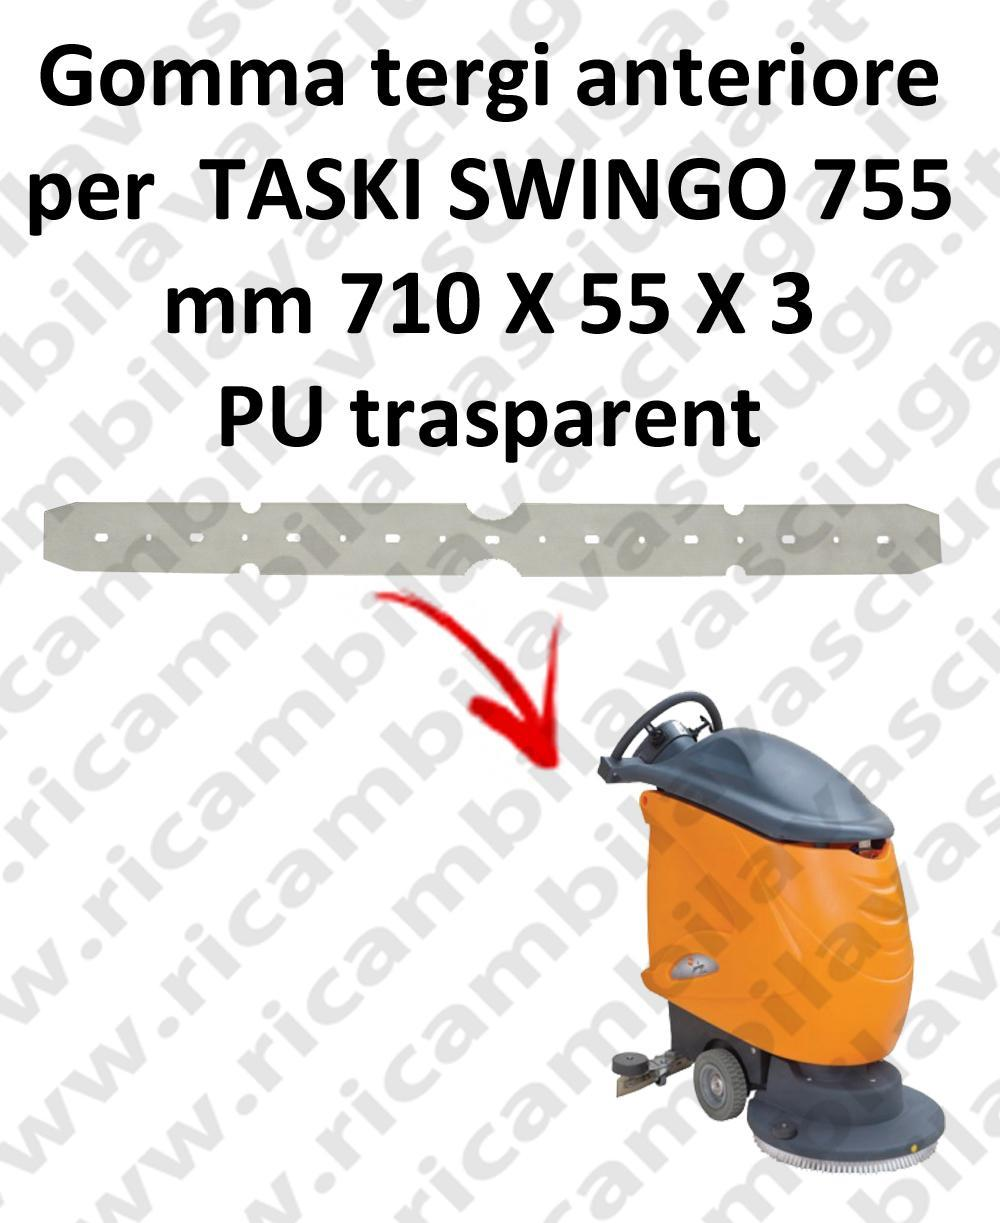 SWINGO 755  Front Squeegee rubber for TASKI accessories, reaplacement, spare parts,o scrubber dryer squeegee